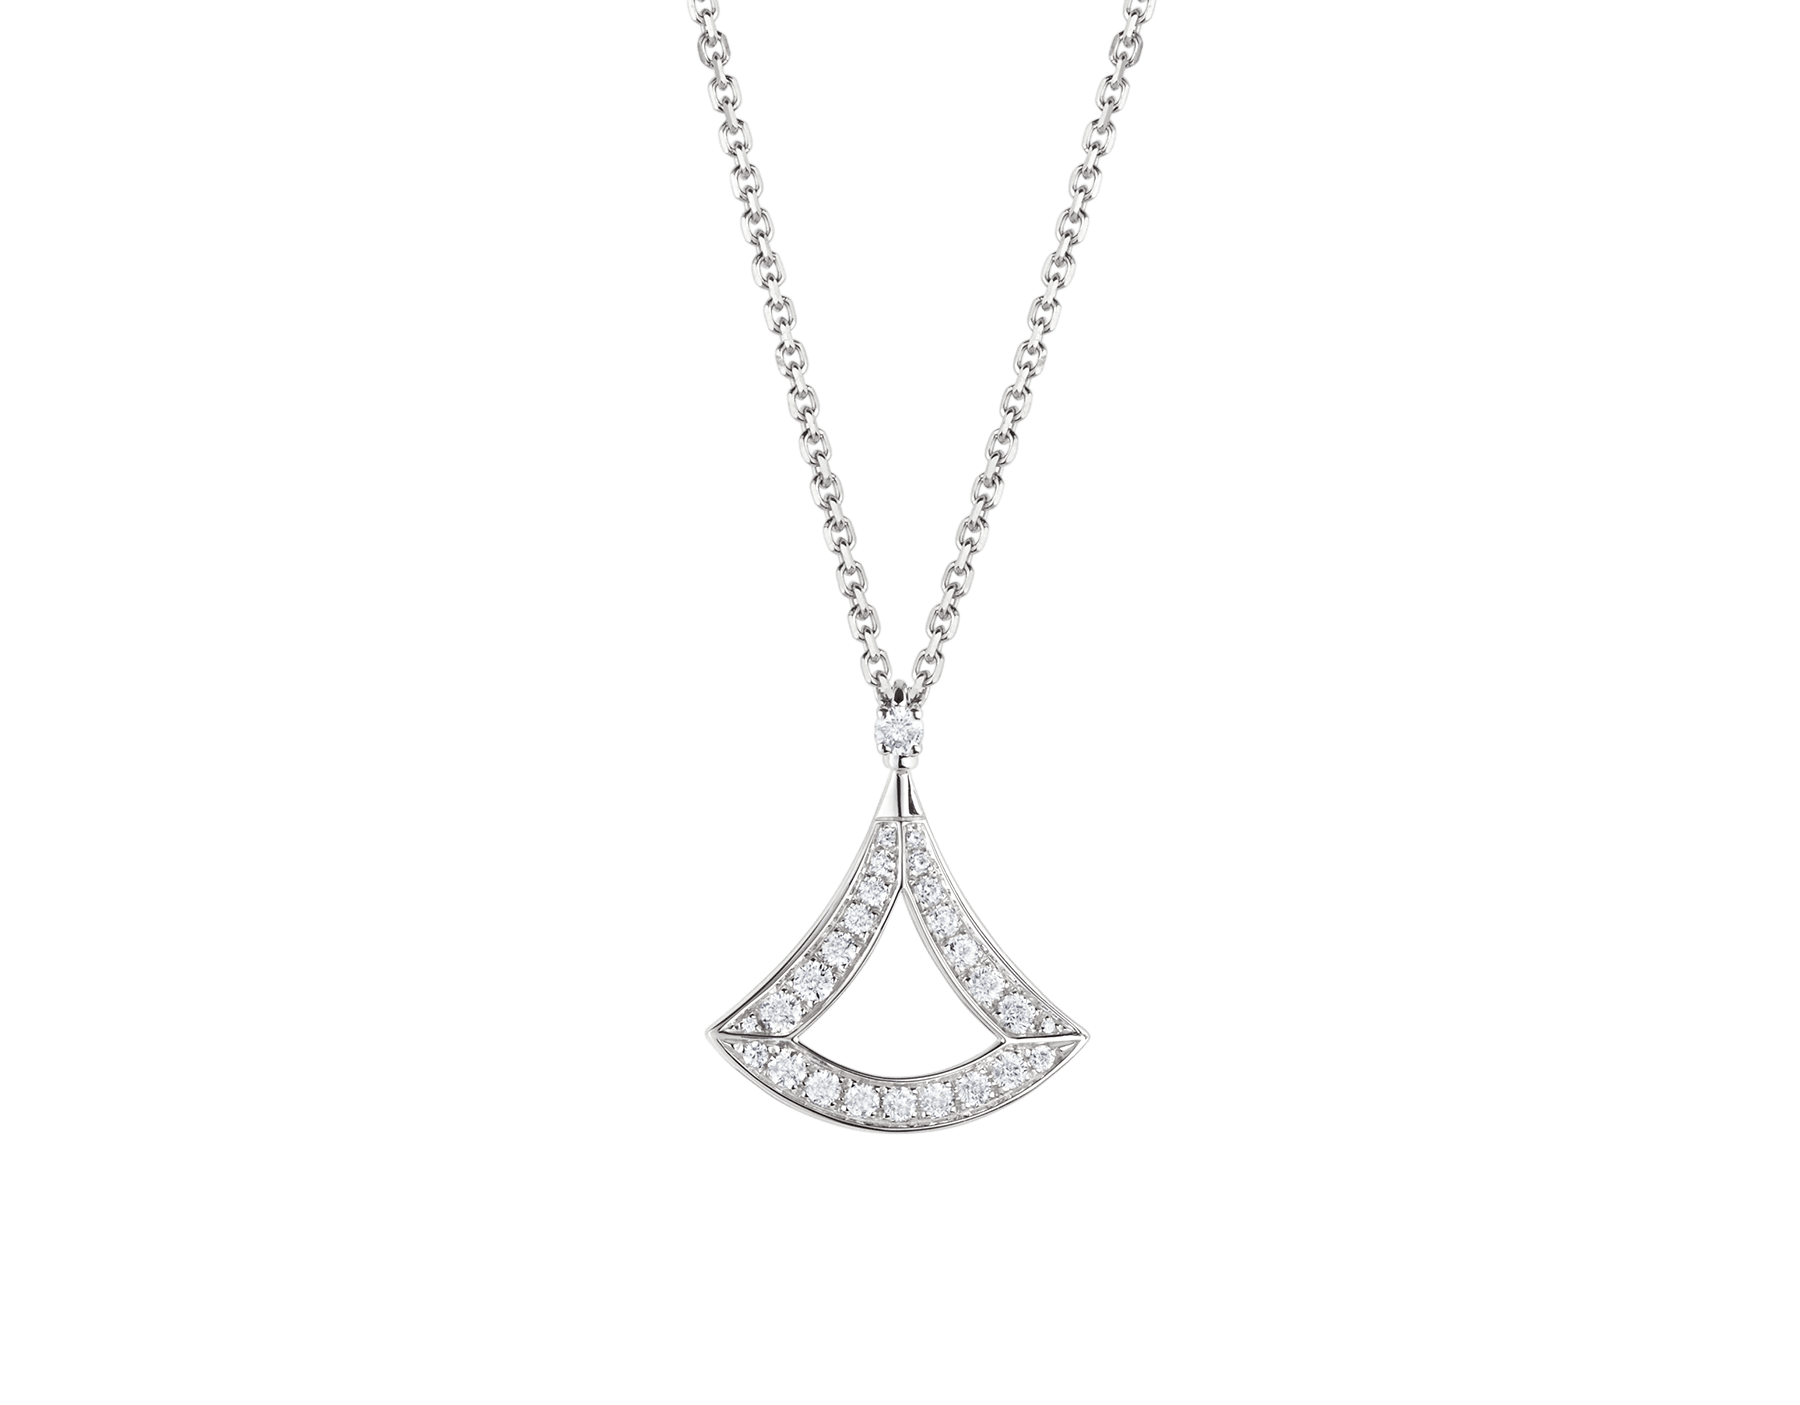 DIVAS' DREAM openwork necklace in 18 kt white gold with 18 kt white gold pendant set with pavé diamonds. 354047 image 1